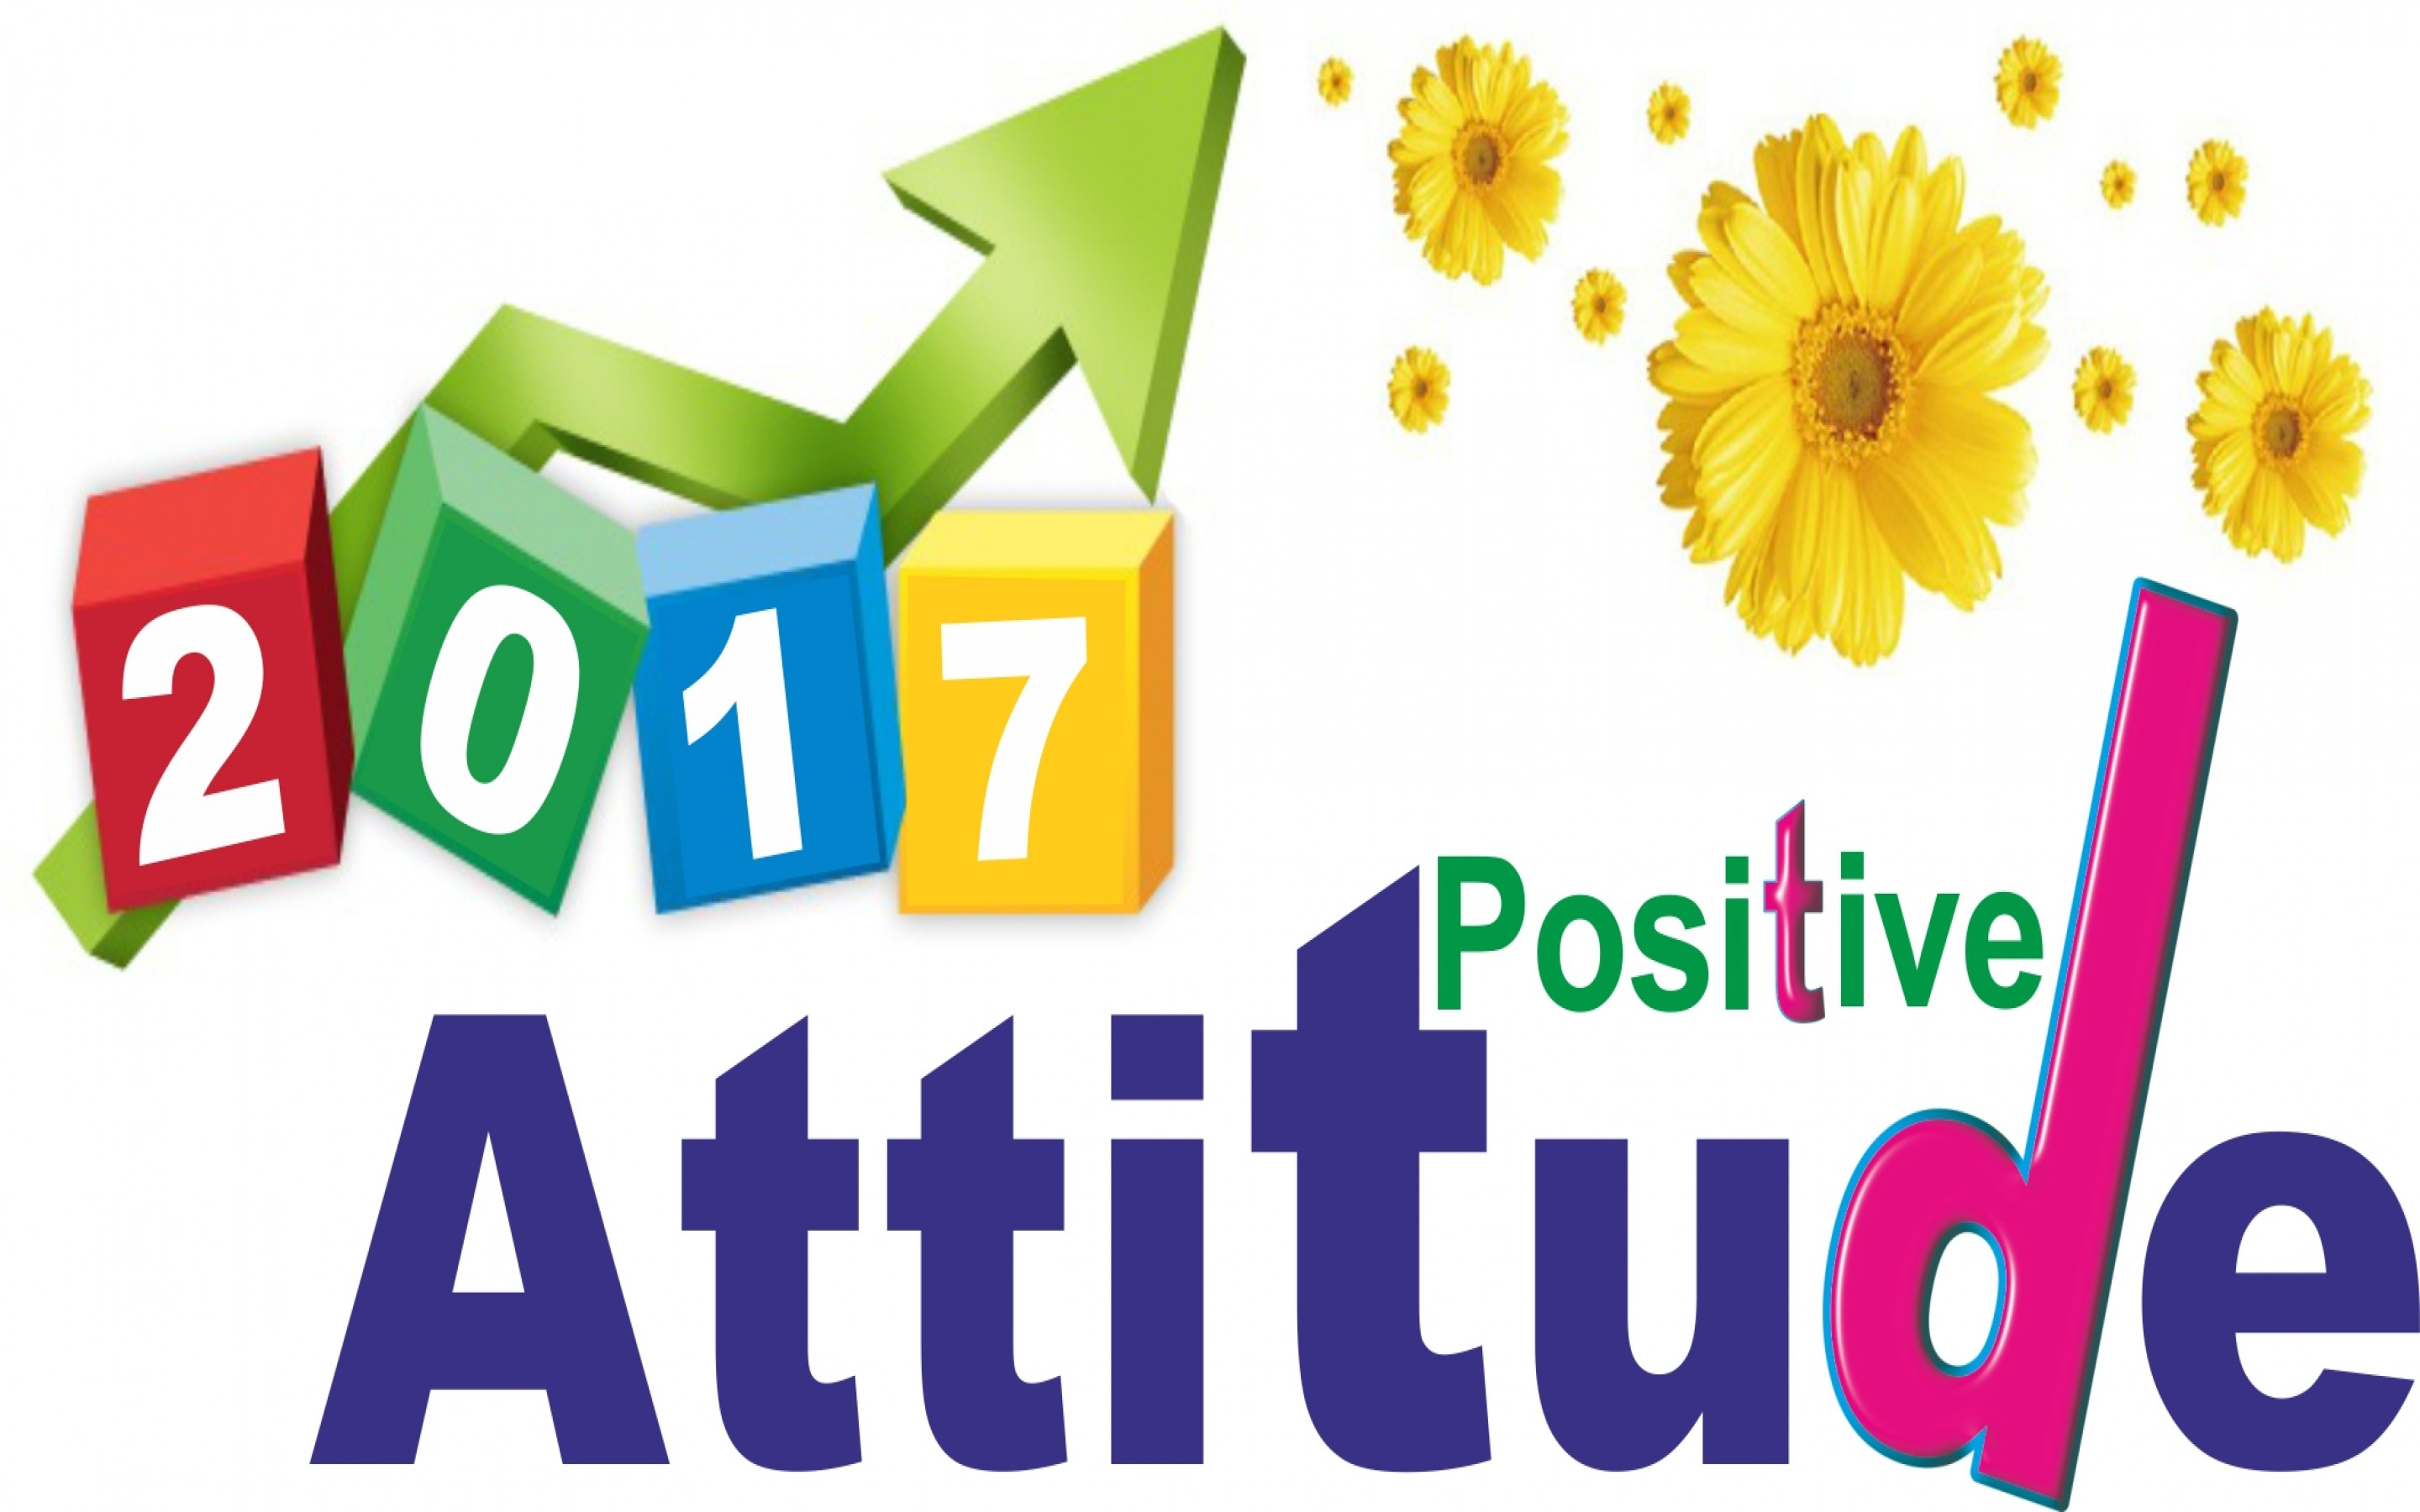 Welcome The Change Happy New Year 2017